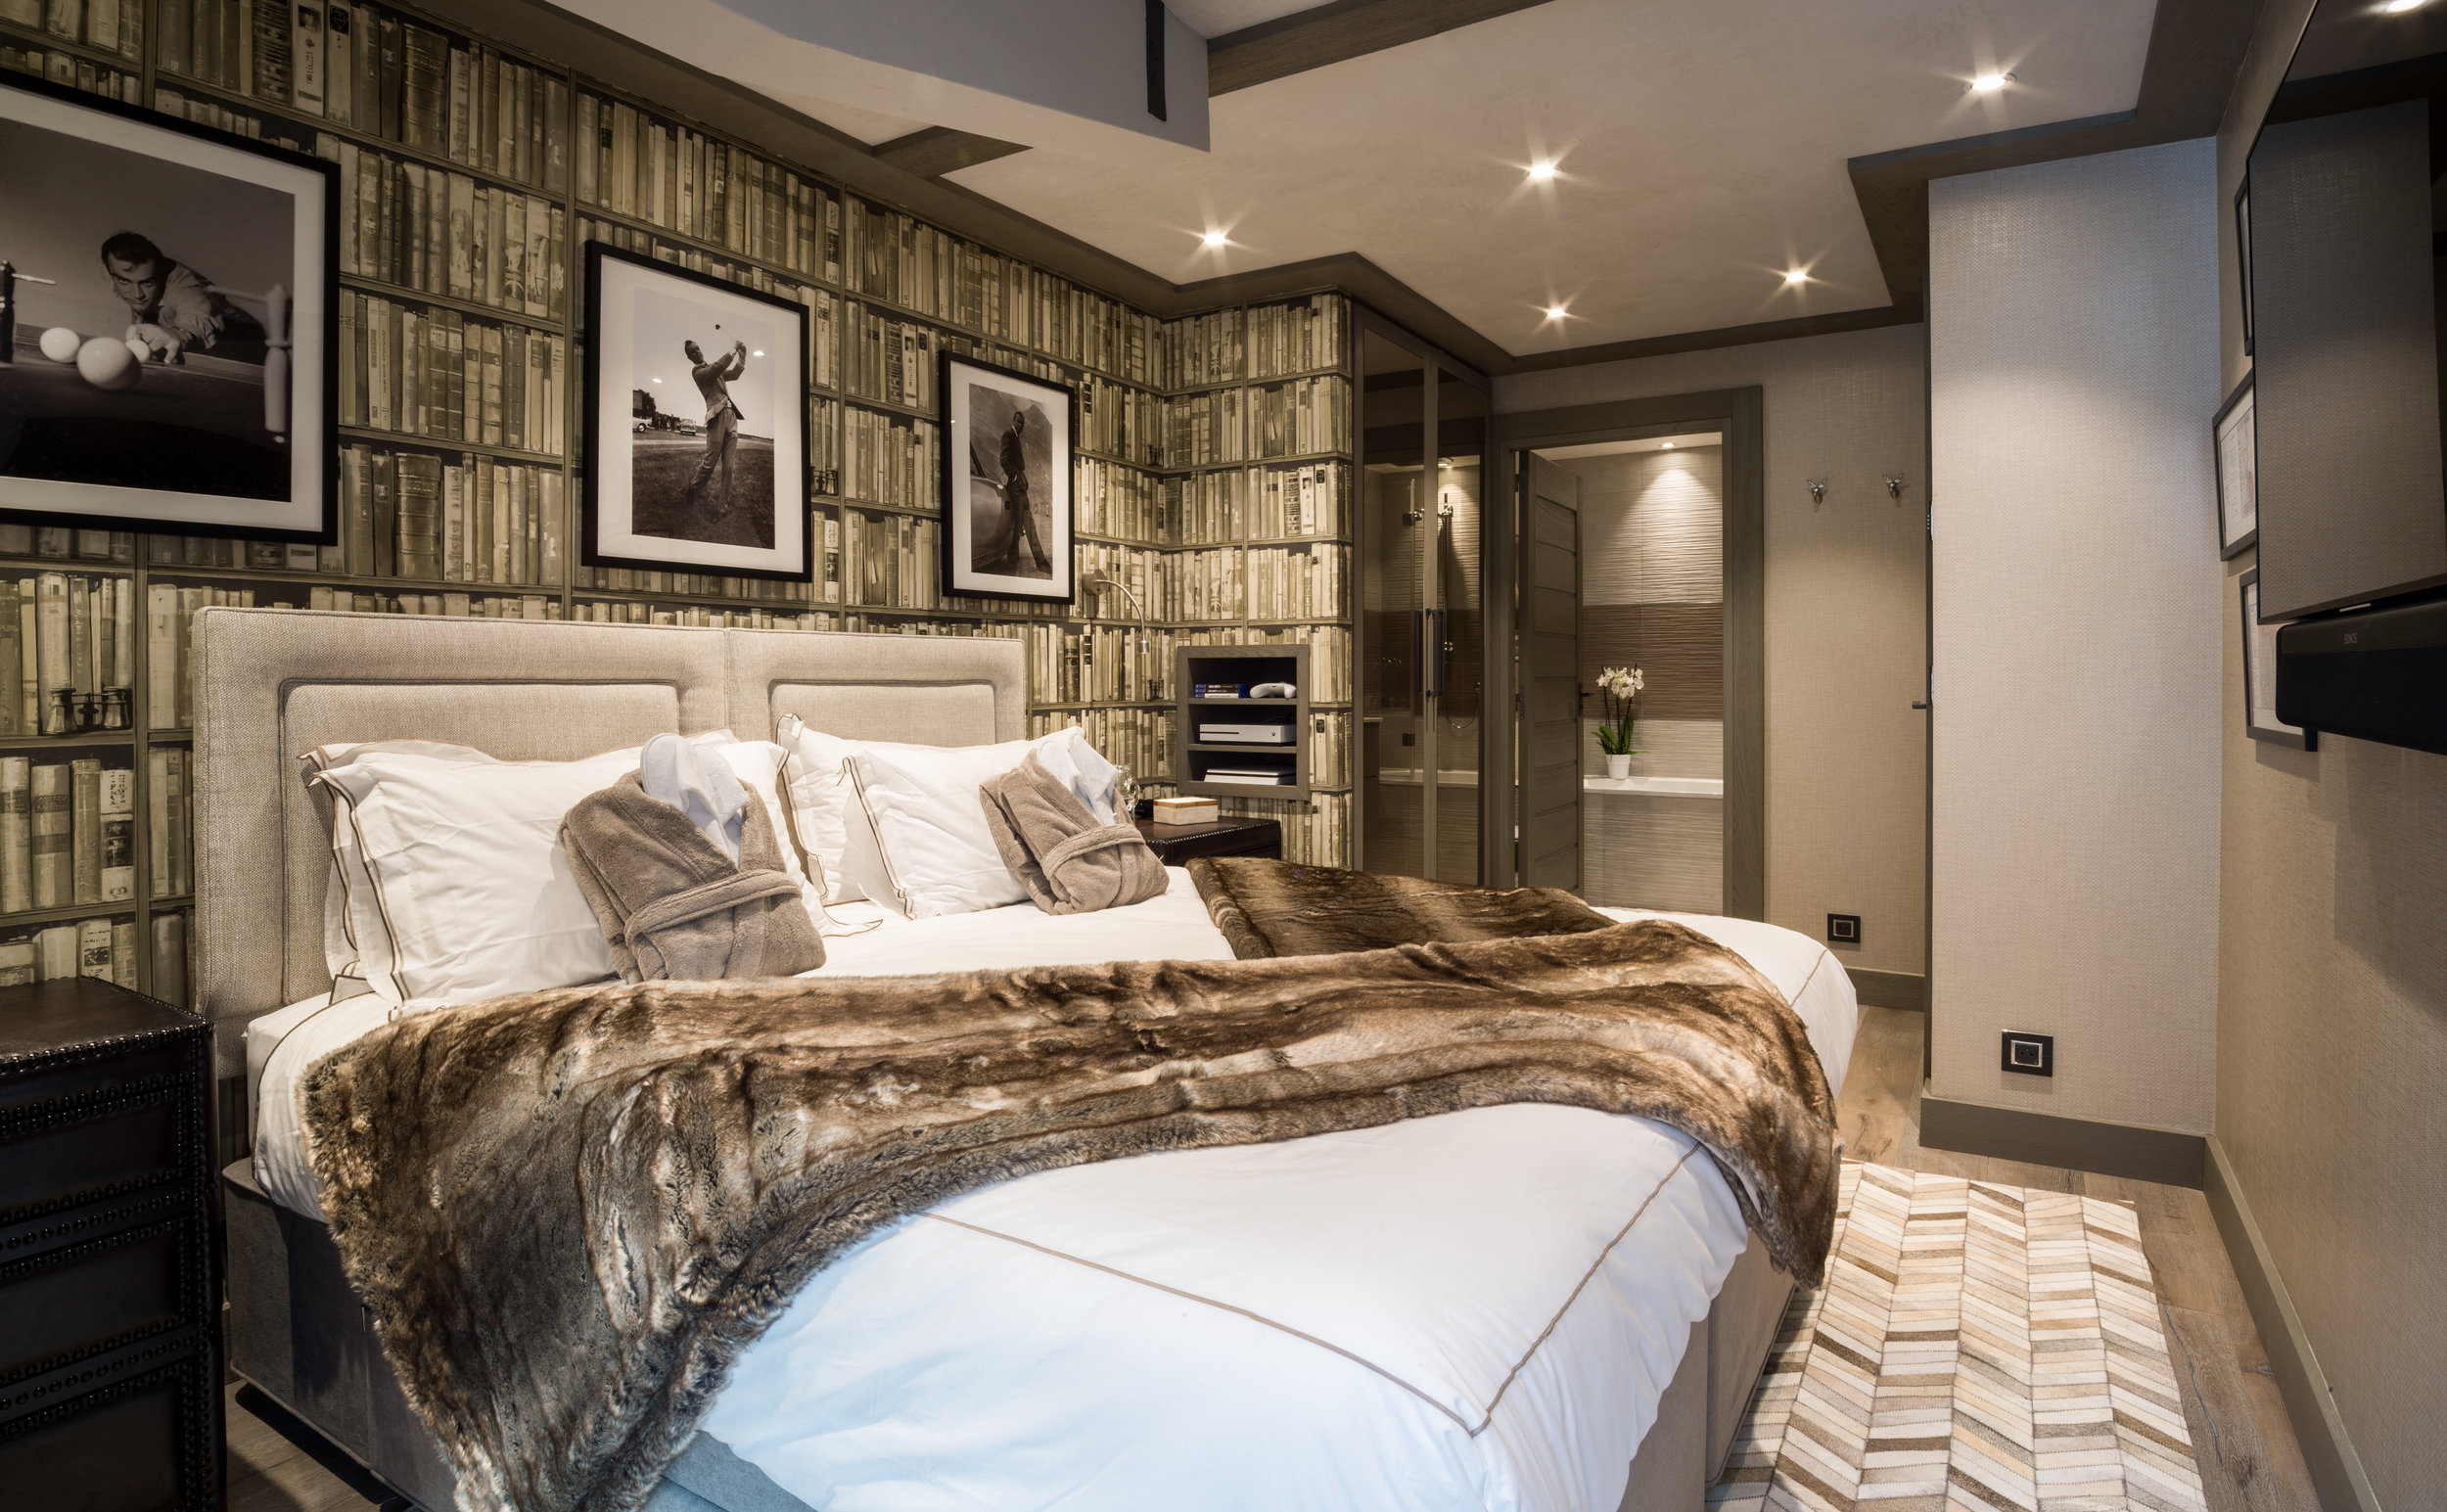 Chalet Sweet Escape  pays hommage to Sean Connery and Ian Fleming's beloved charter of James Bond. Of course, Courchevel and Meribel have golf courses to visit in the summer months.